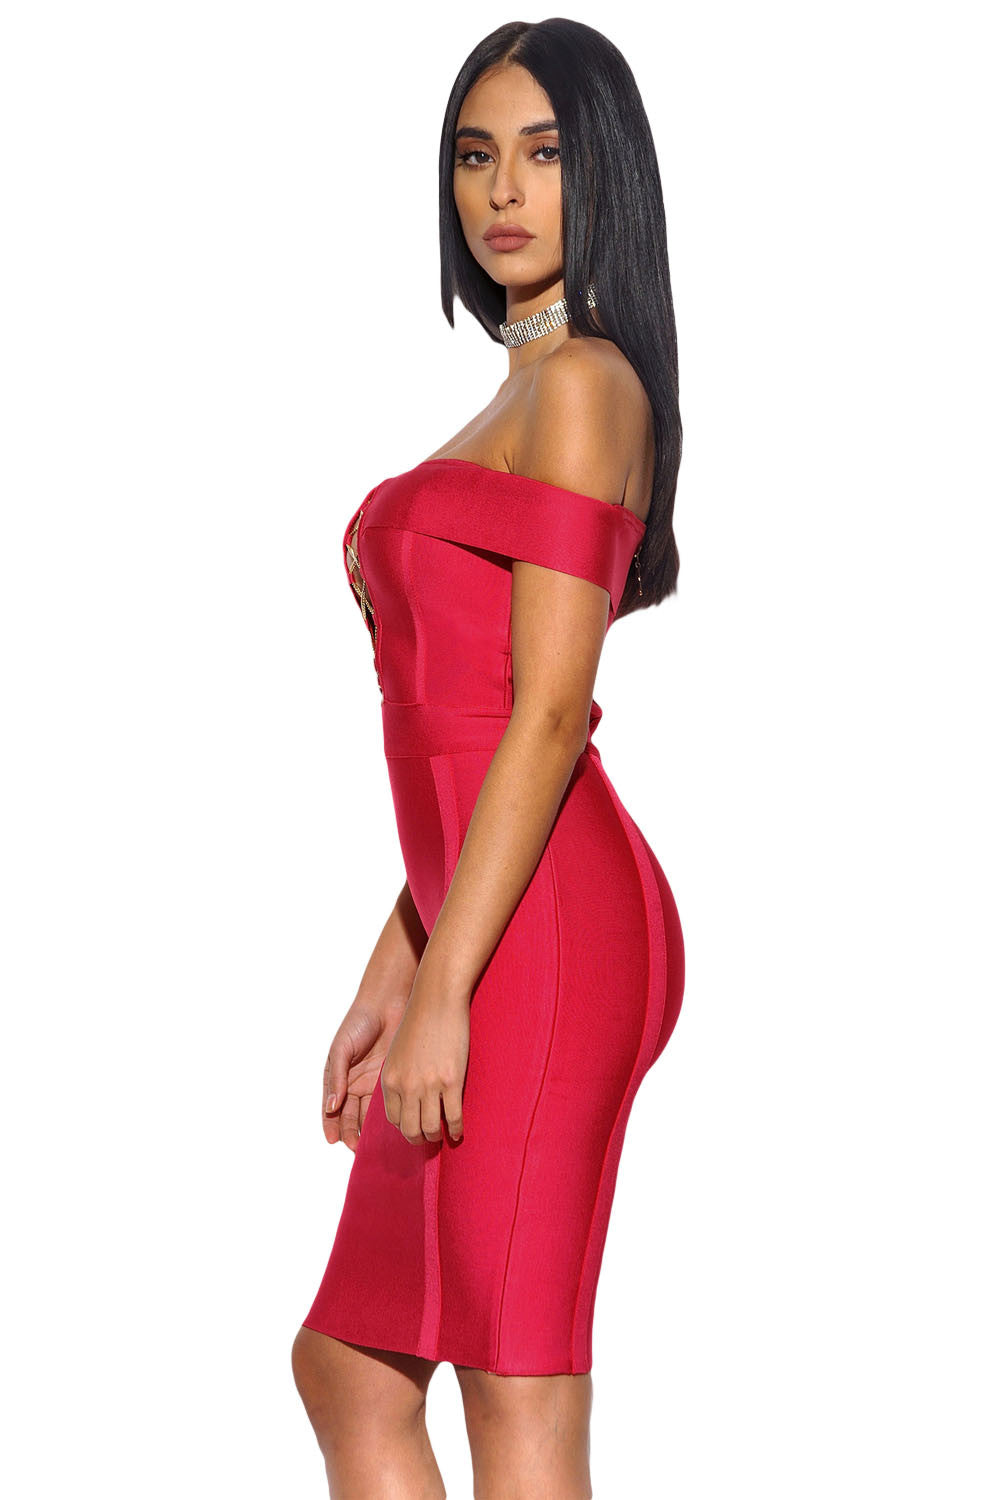 Maddie Red Bandage Dress - waist trainer, dress - waist trainer, swancoast.com ann chery,